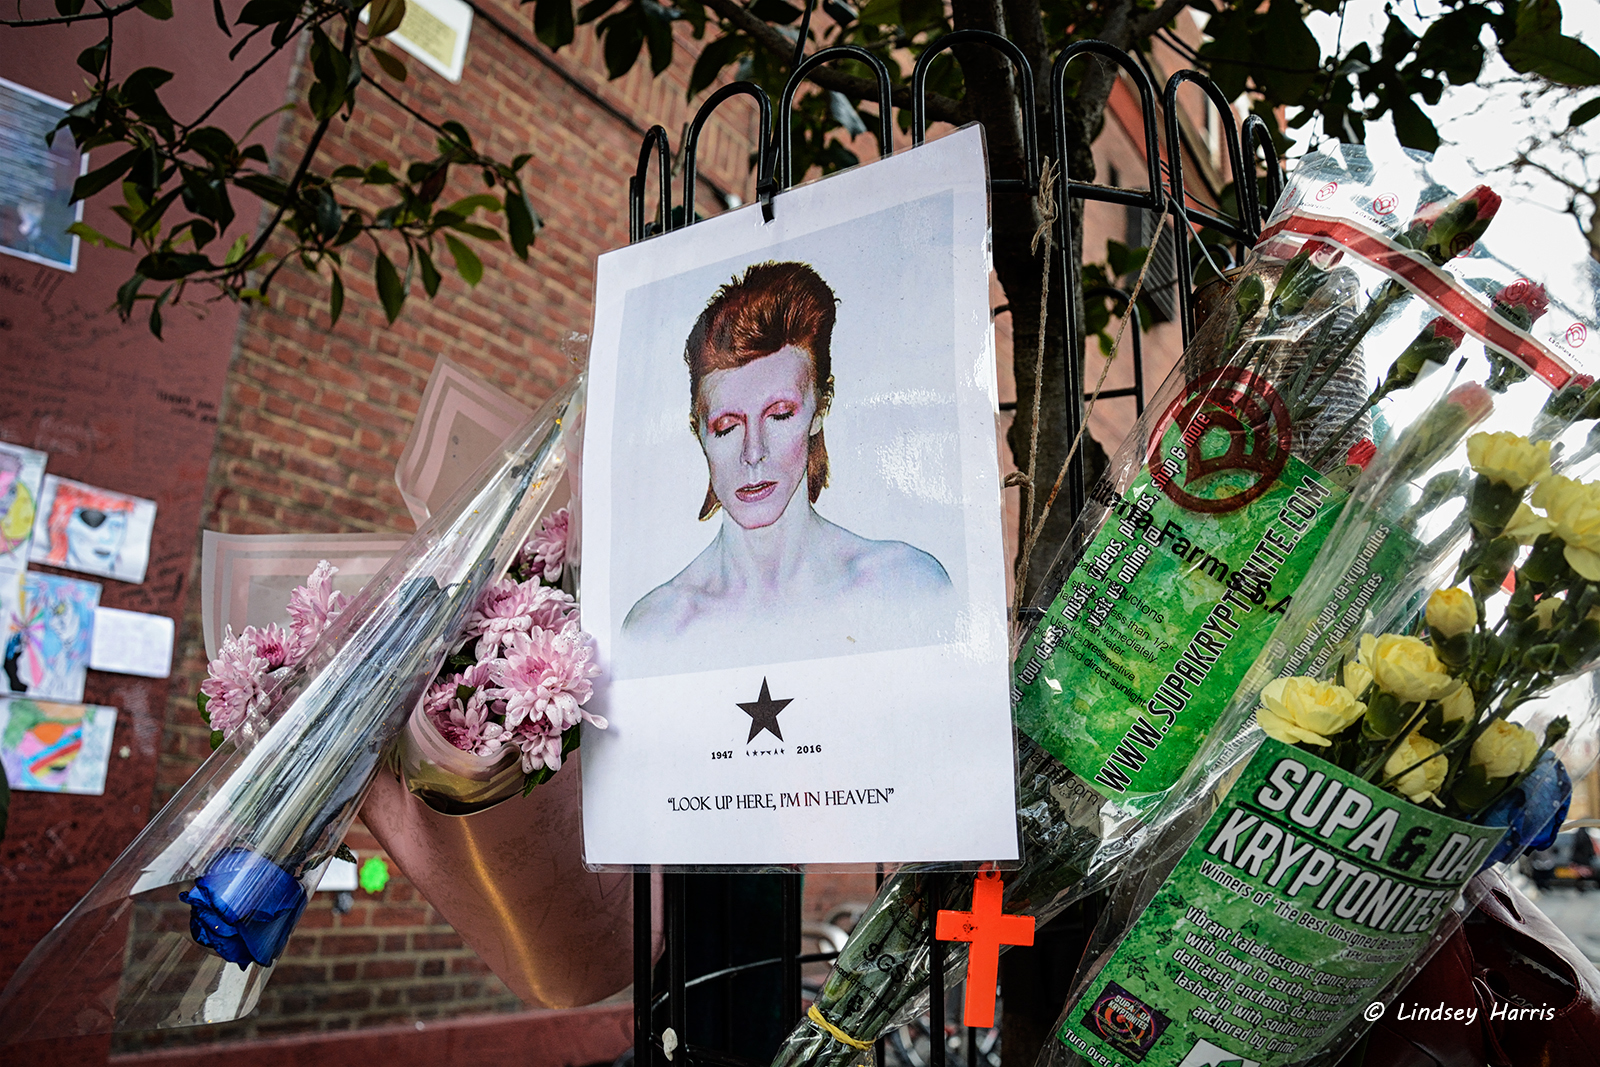 David Bowie Brixton Memorial Photos